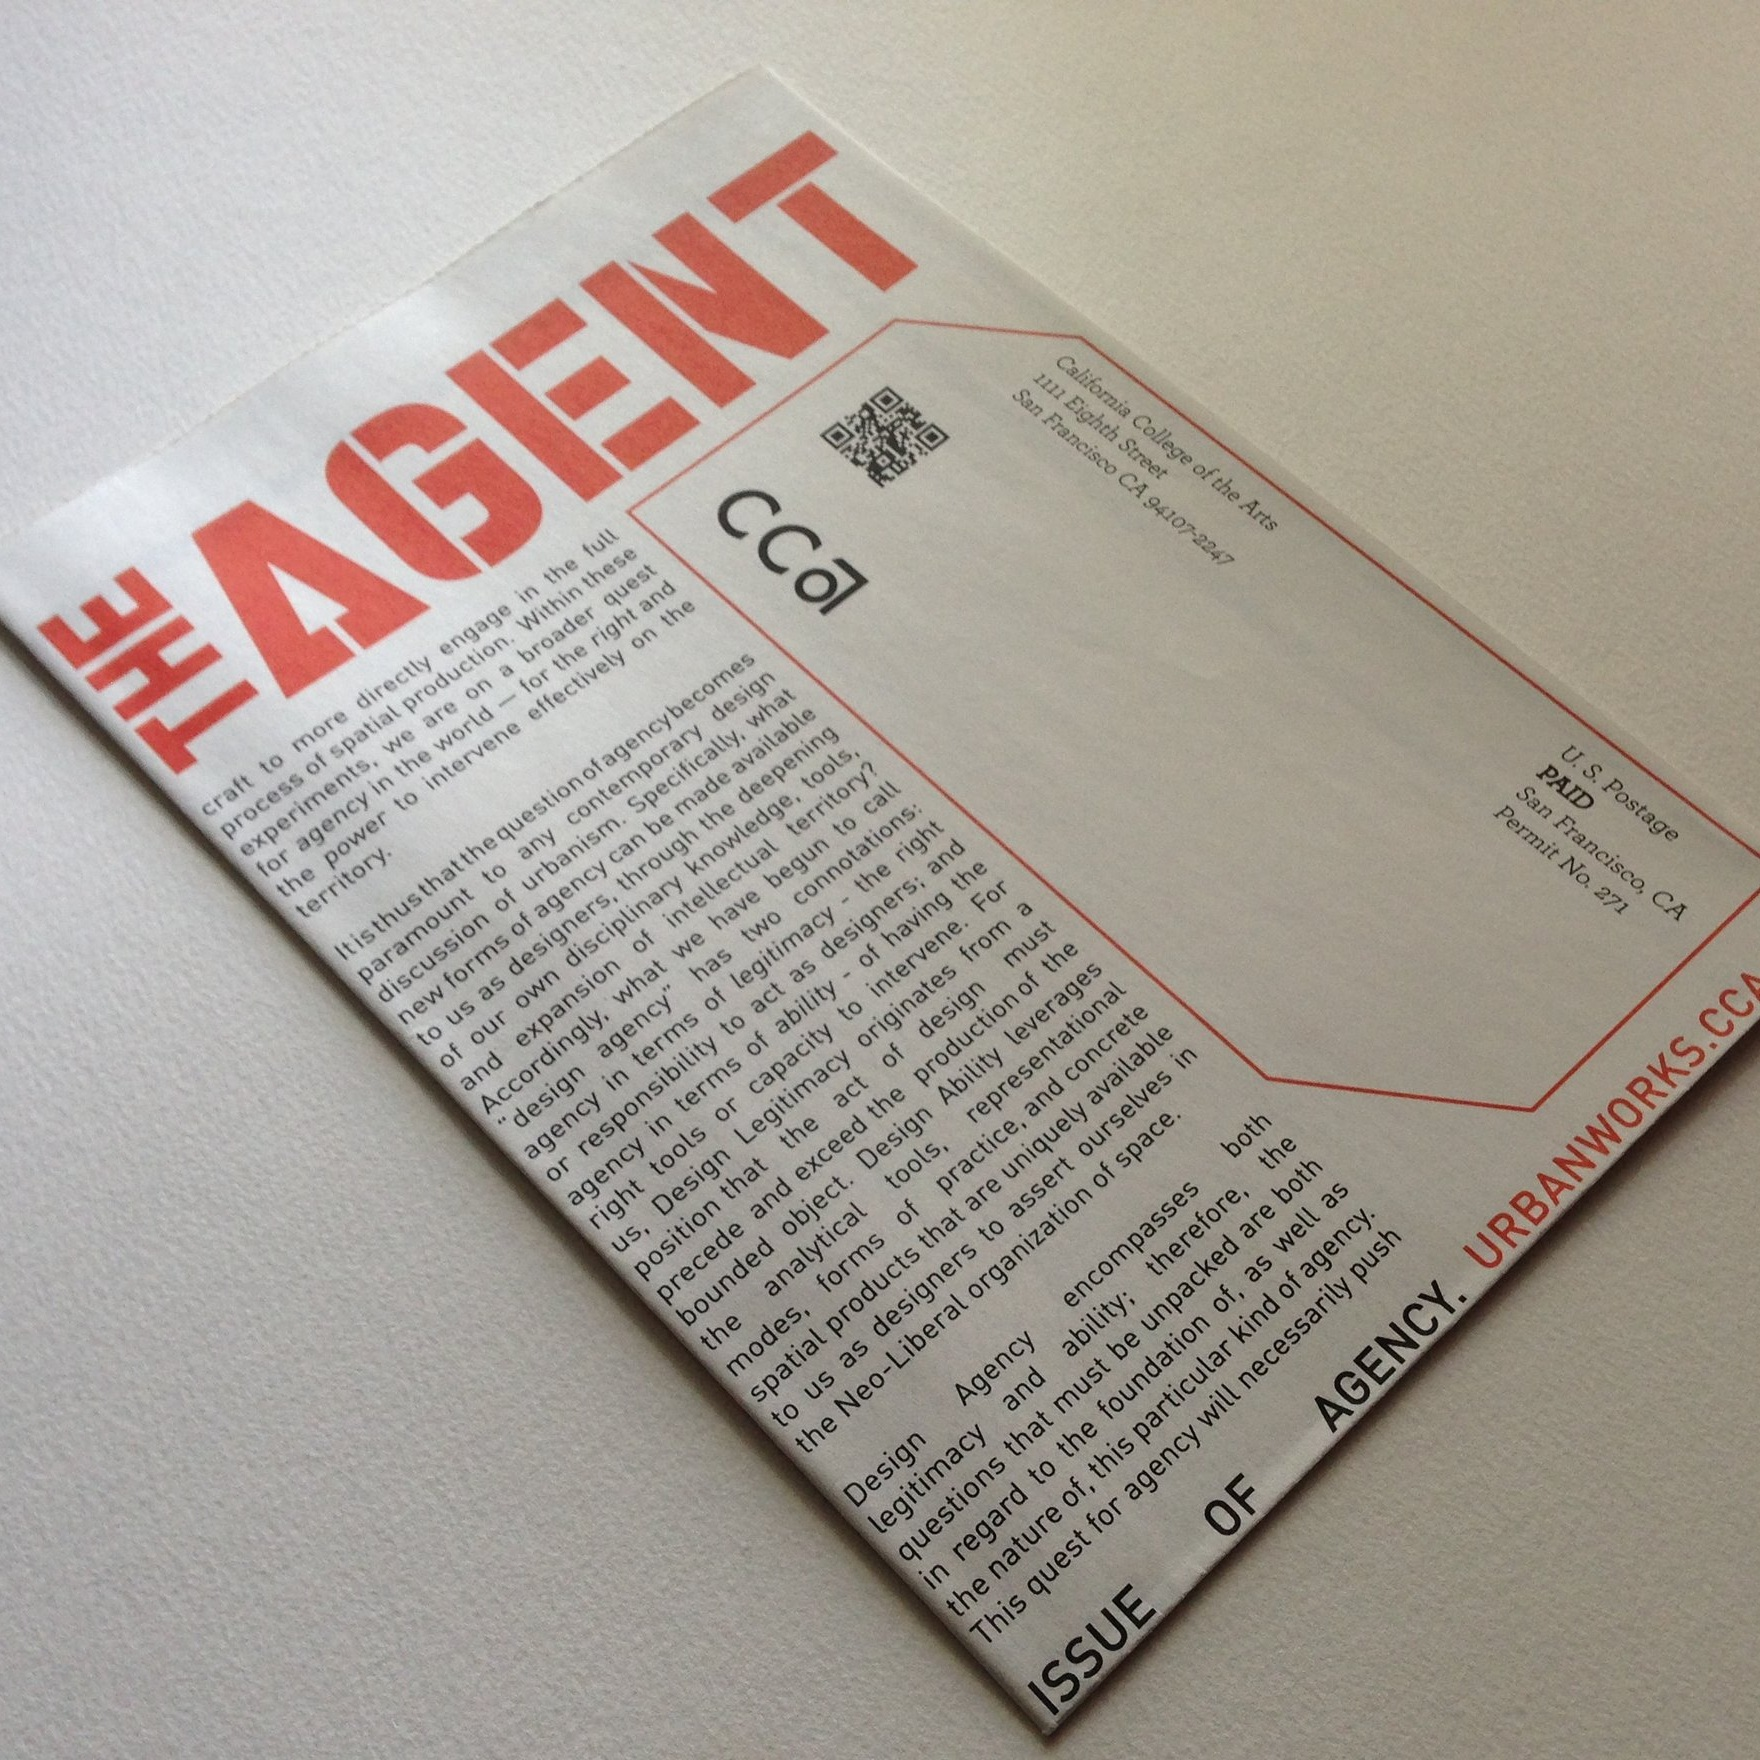 ISSUE 0: THE ISSUE OF AGENCY  Publication '14